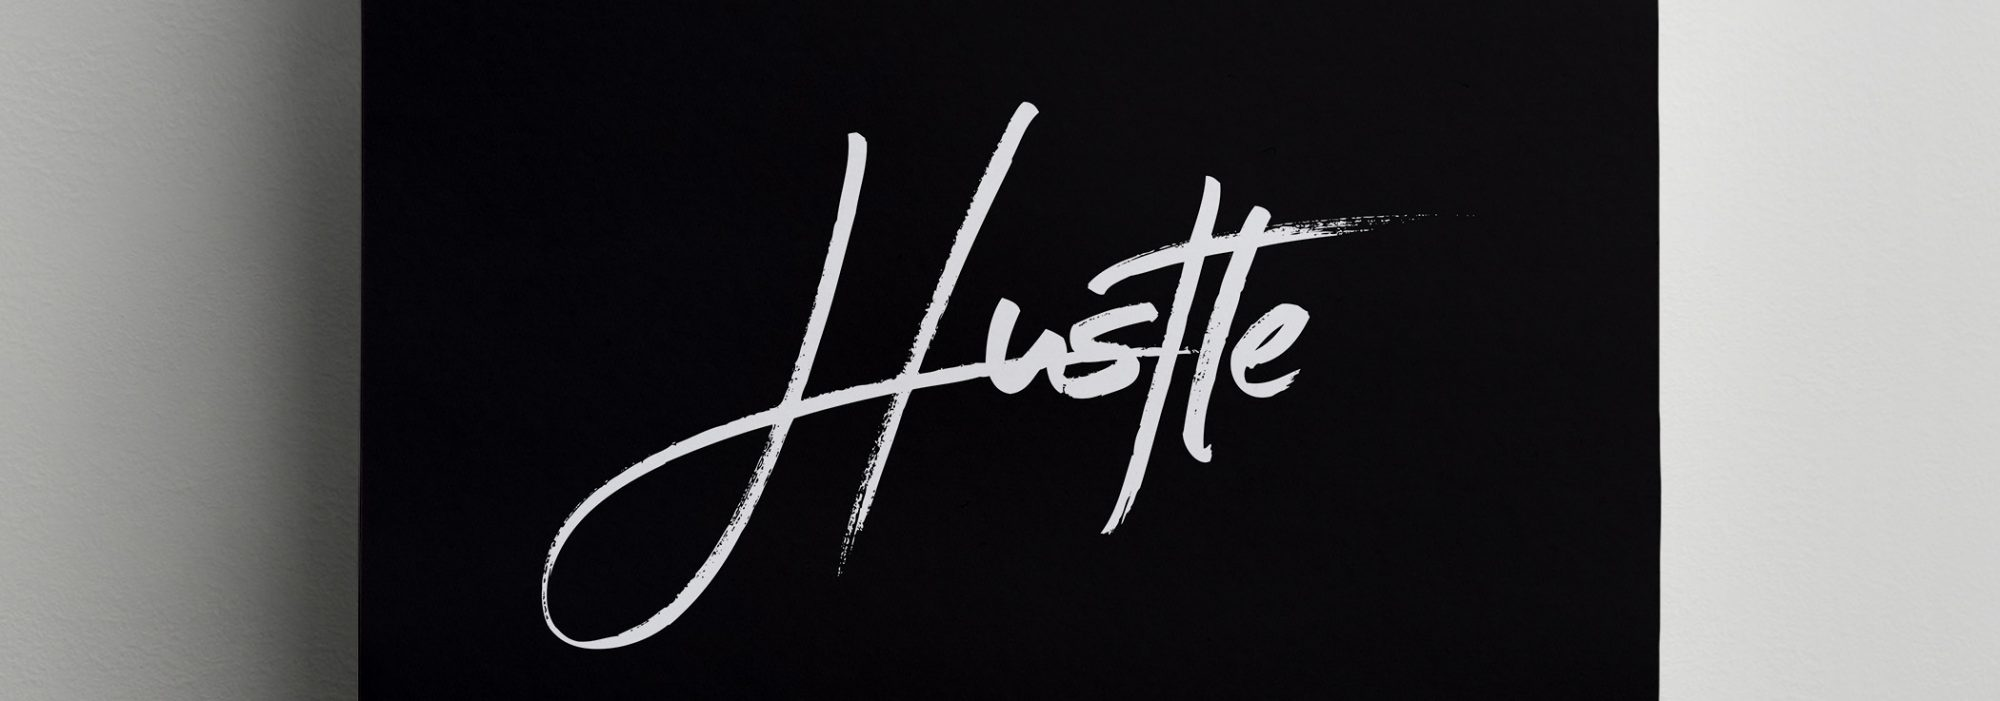 Hustle Palace